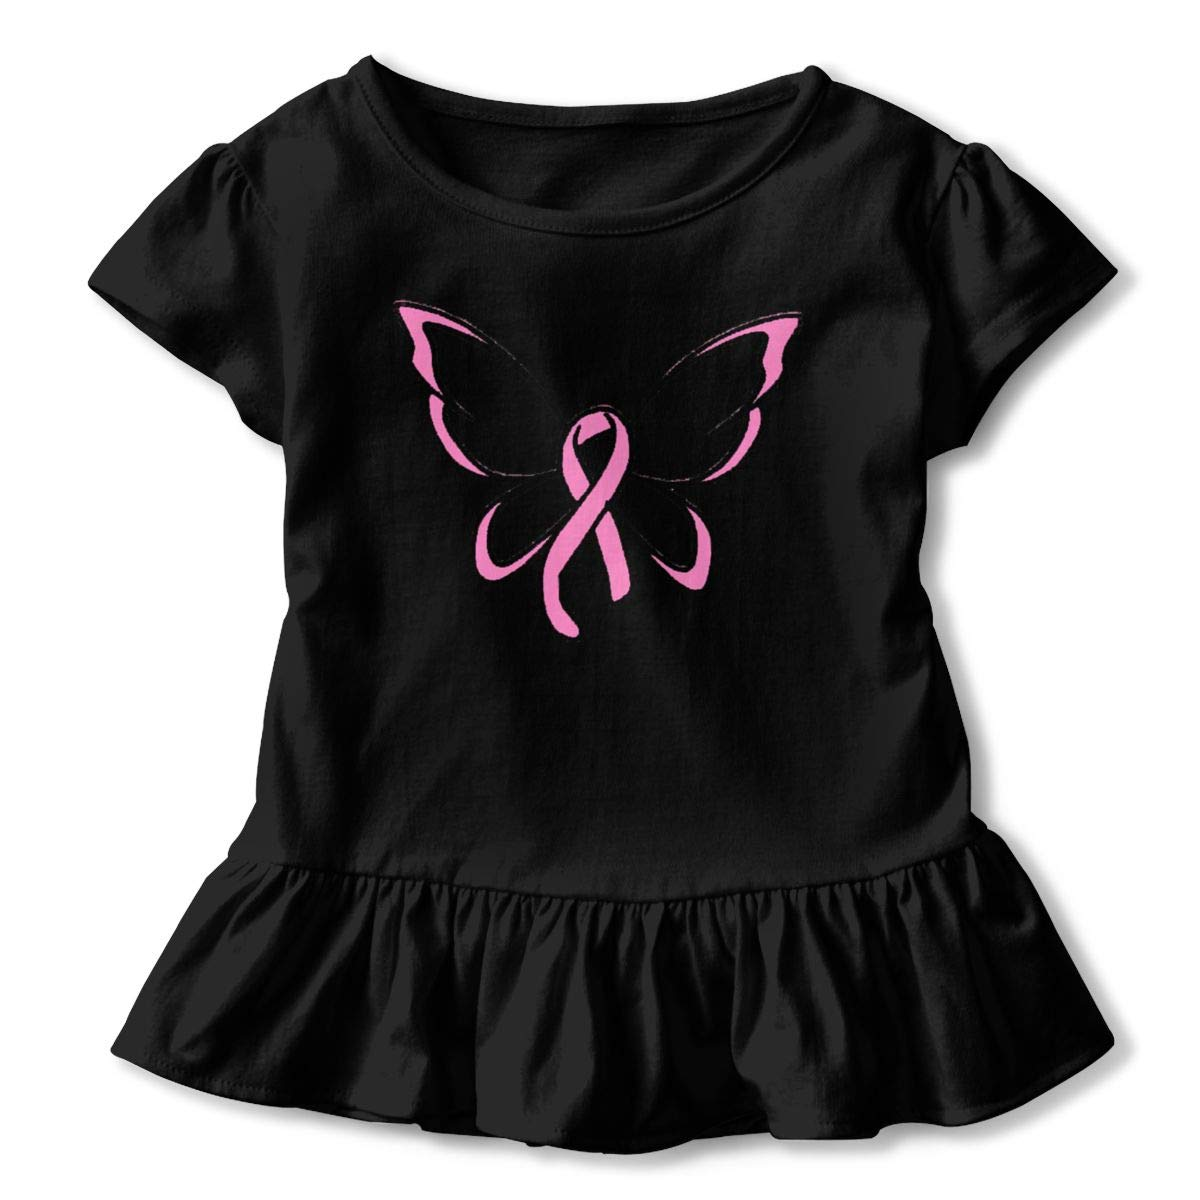 Breast Cancer Ribbon Butterfly Shirt Funny Little Baby Girls Flounced T Shirts Graphic Tees for 2-6T Baby Girls